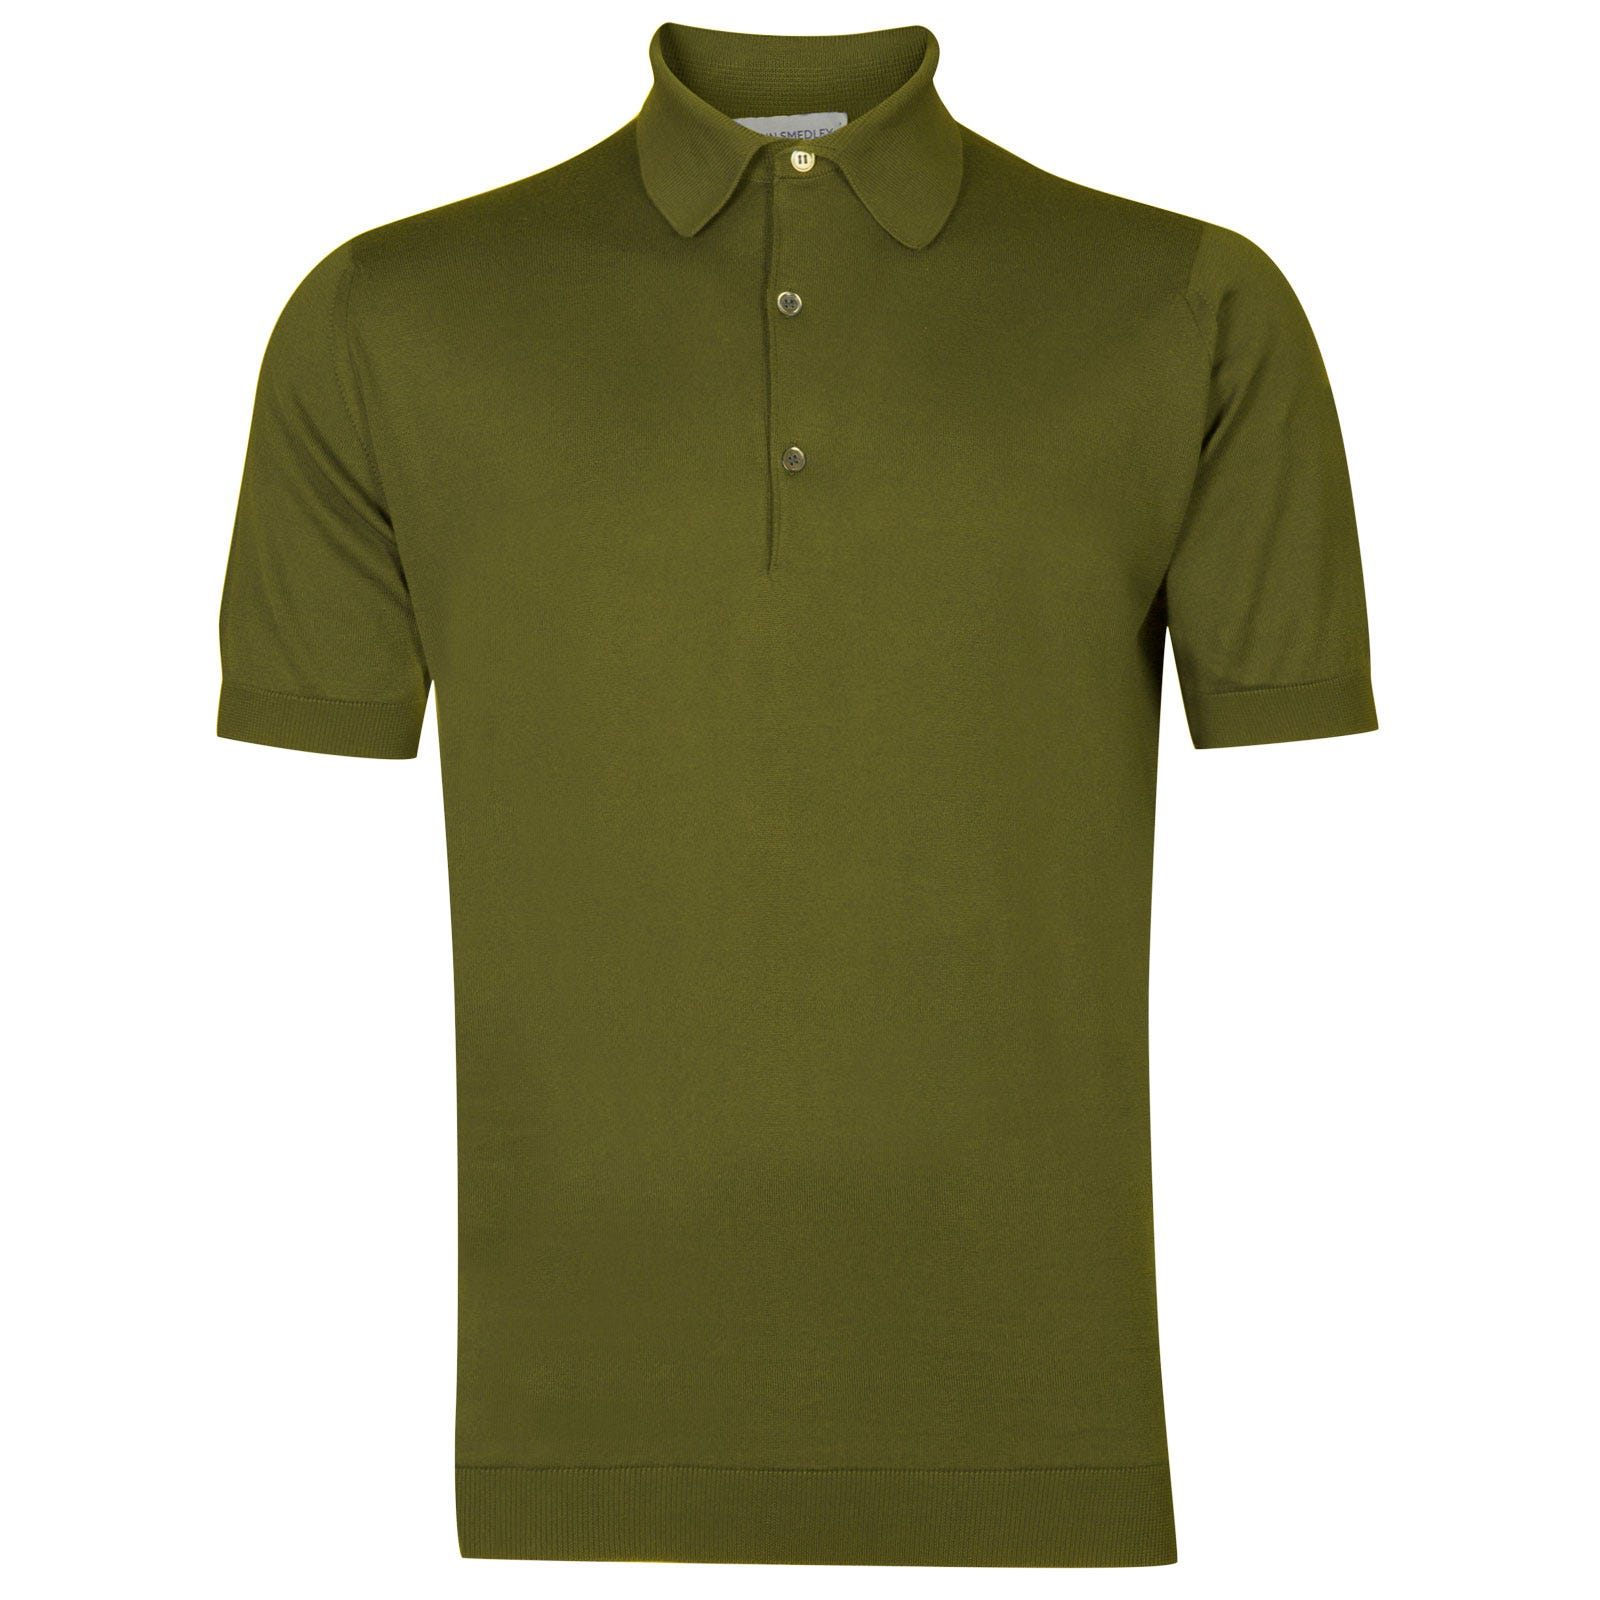 John Smedley adrian Sea Island Cotton Shirt in Lumsdale Green-XXL